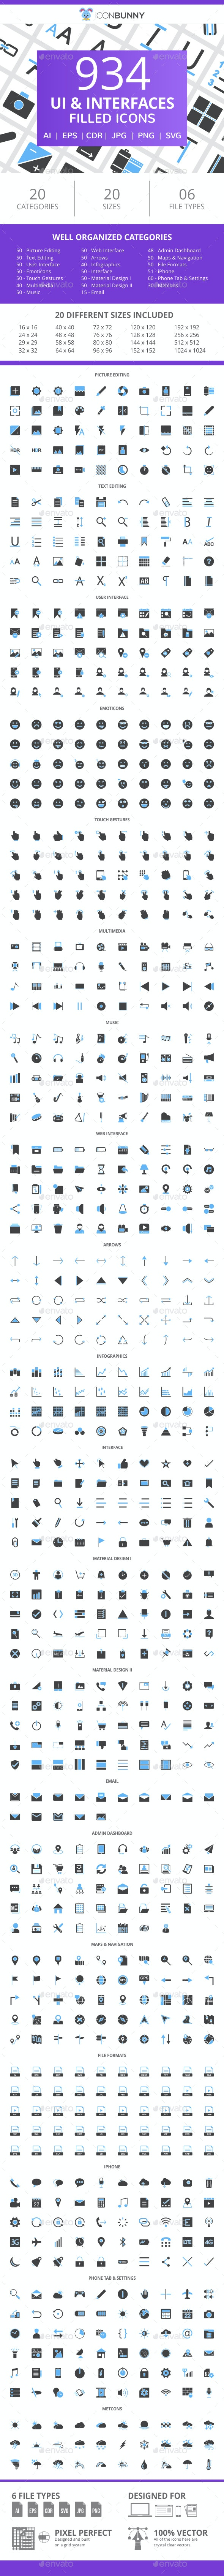 934 UI & Interfaces Filled Blue & Black Icons - Icons